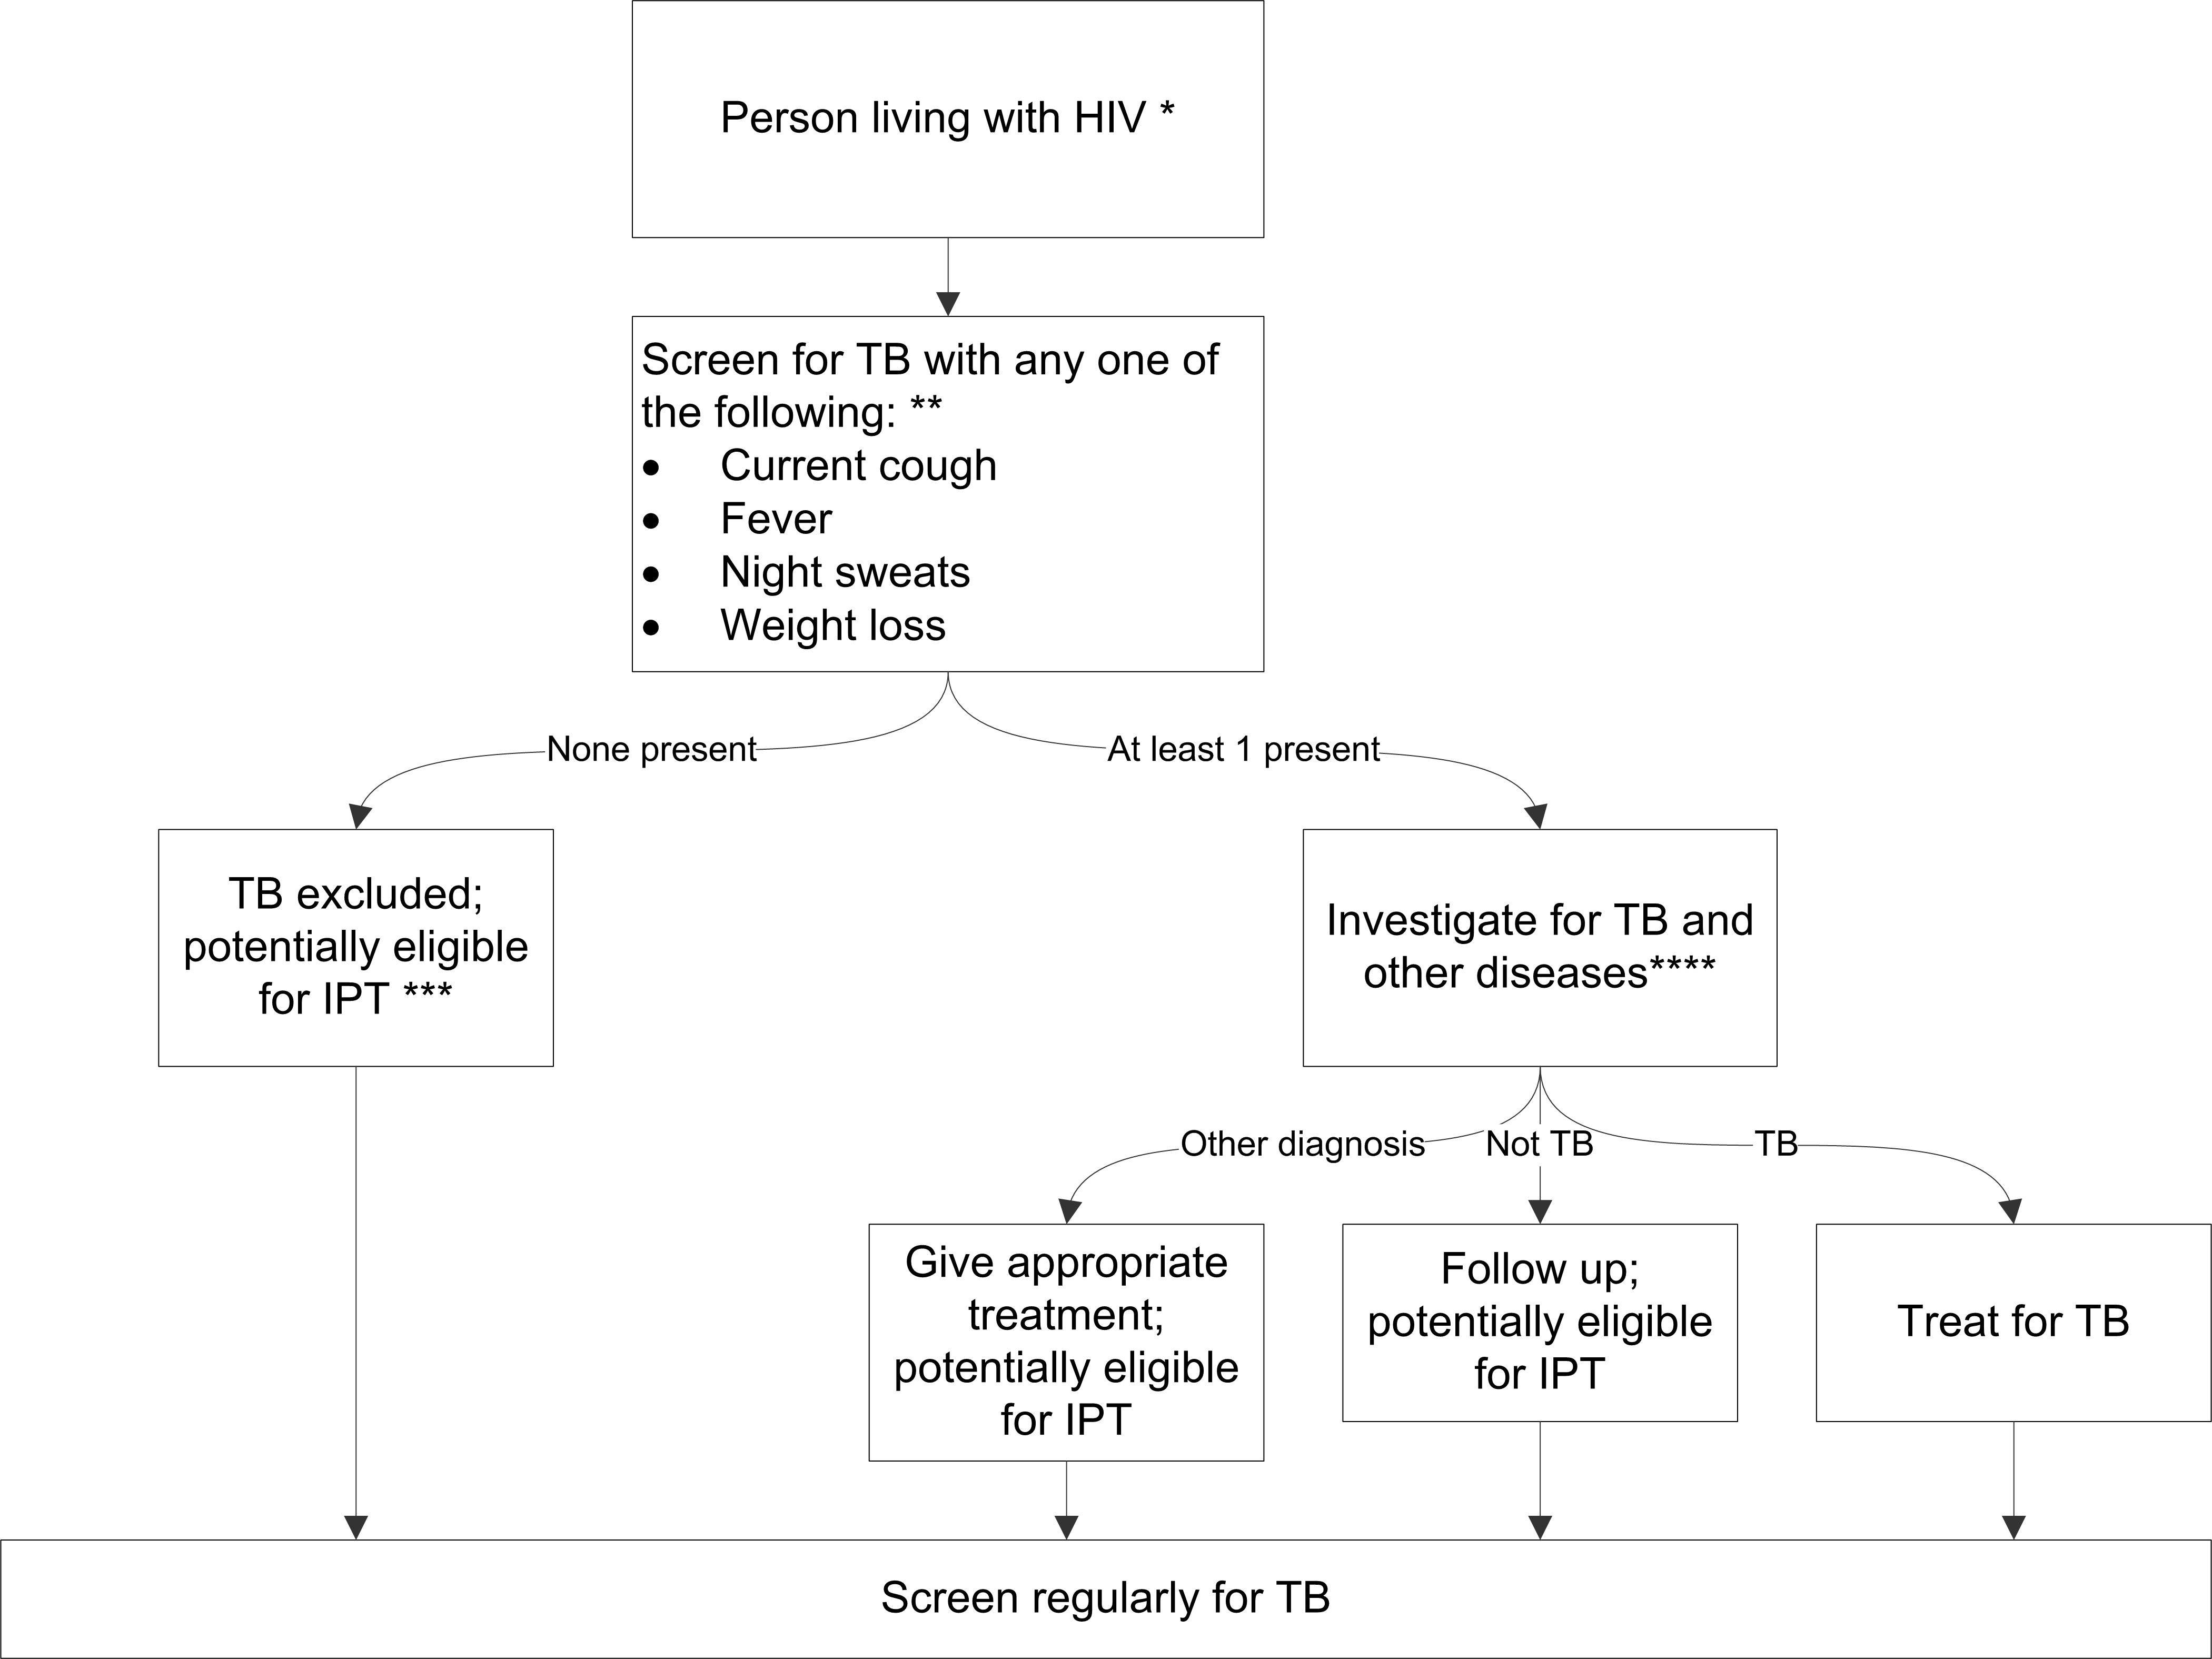 Algorithm for TB screening in person living with HIV in HIV prevalent and resource-constrained settings.